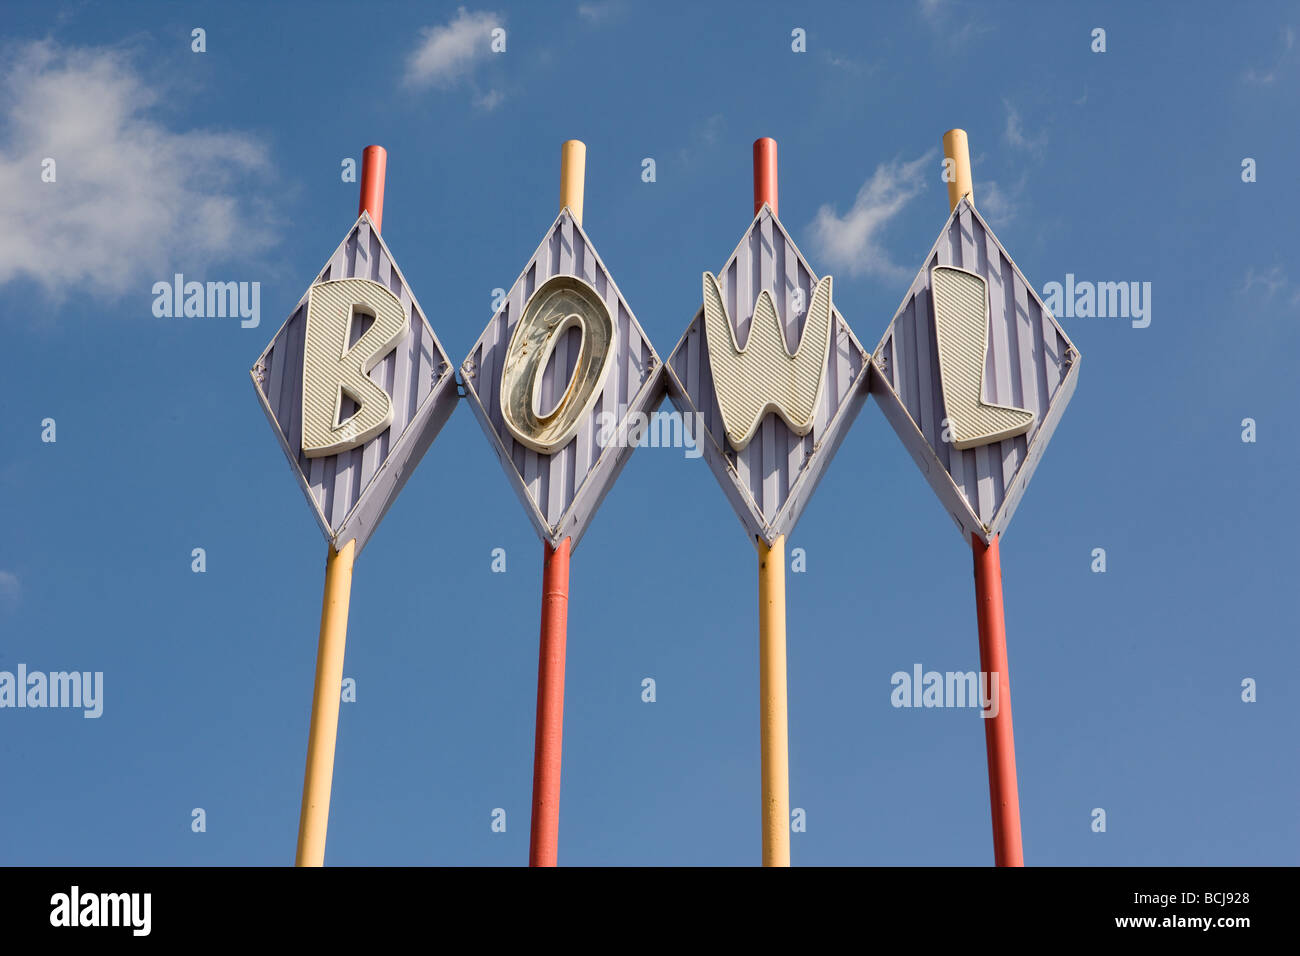 Bowling alley sign that says BOWL in diamond shapes Multi colored poles sky background - Stock Image